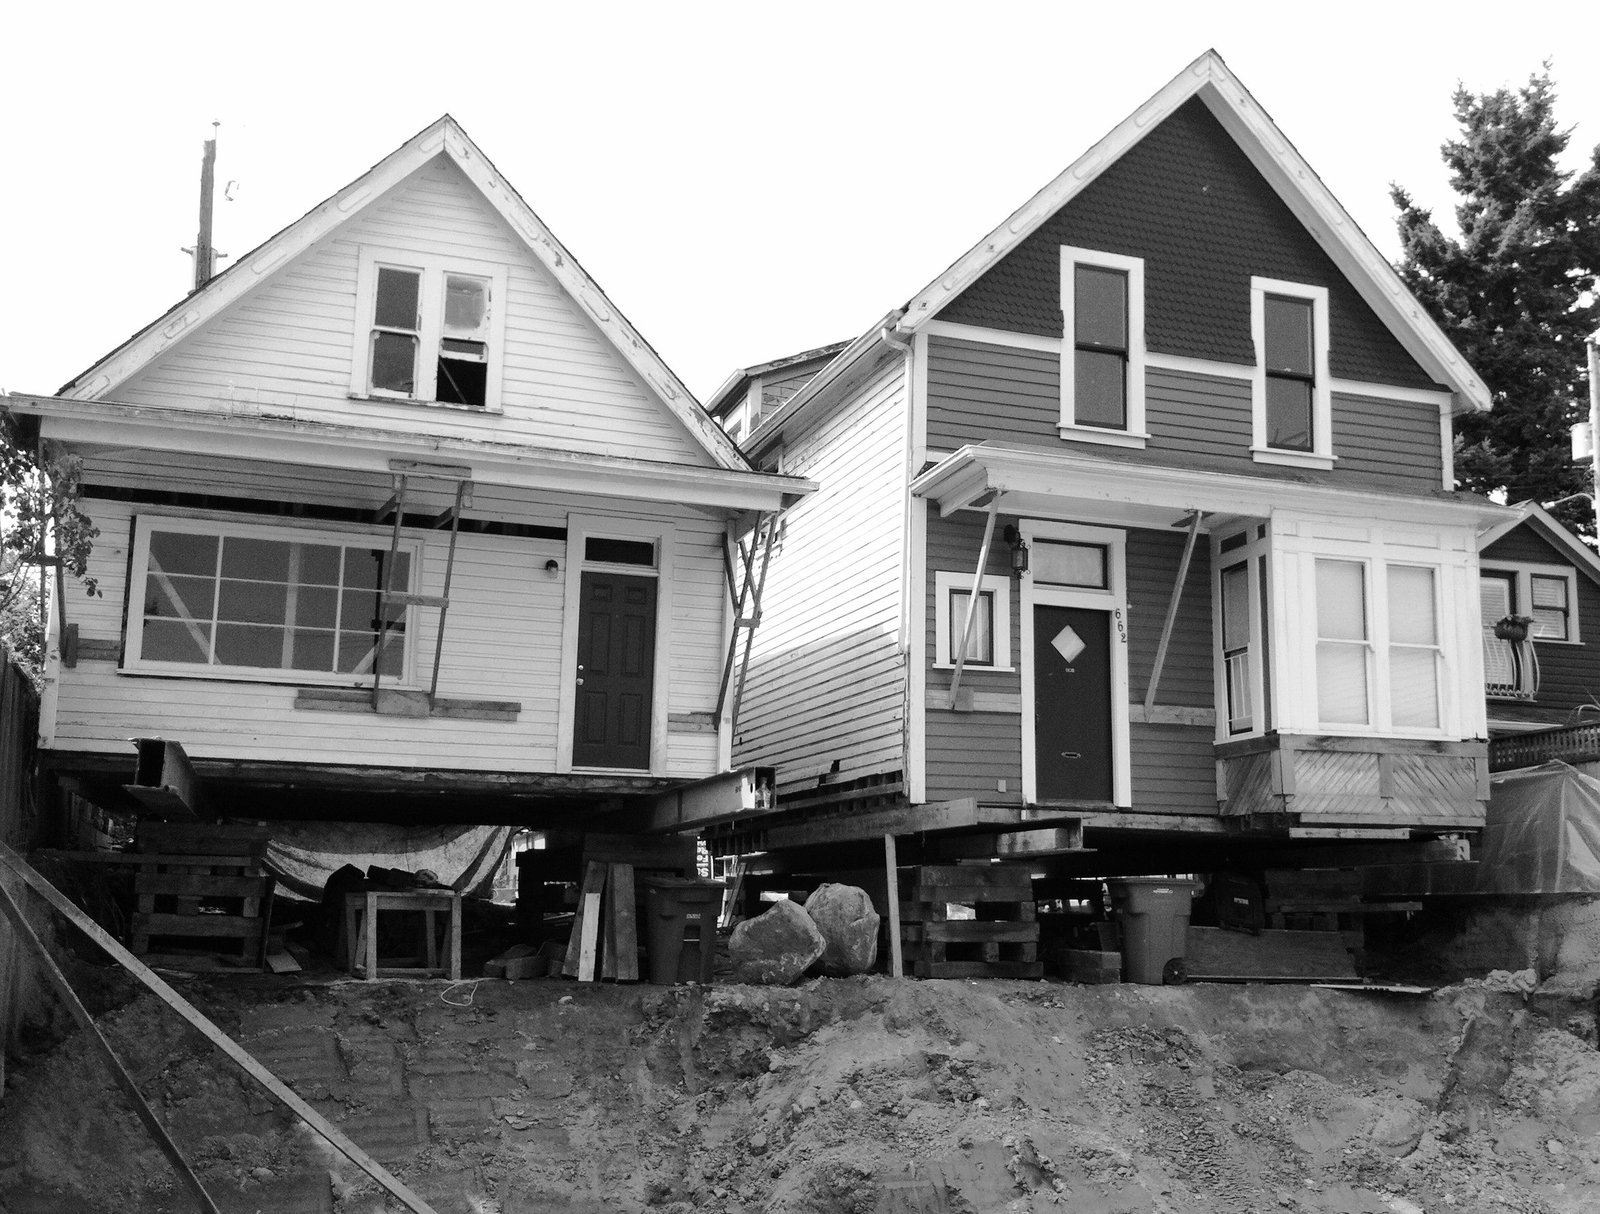 The original structures were lifted from their foundations to accommodate new ground-floor units.  Photo 2 of 7 in As Housing Costs Soar, Two Homes Multiply to Seven